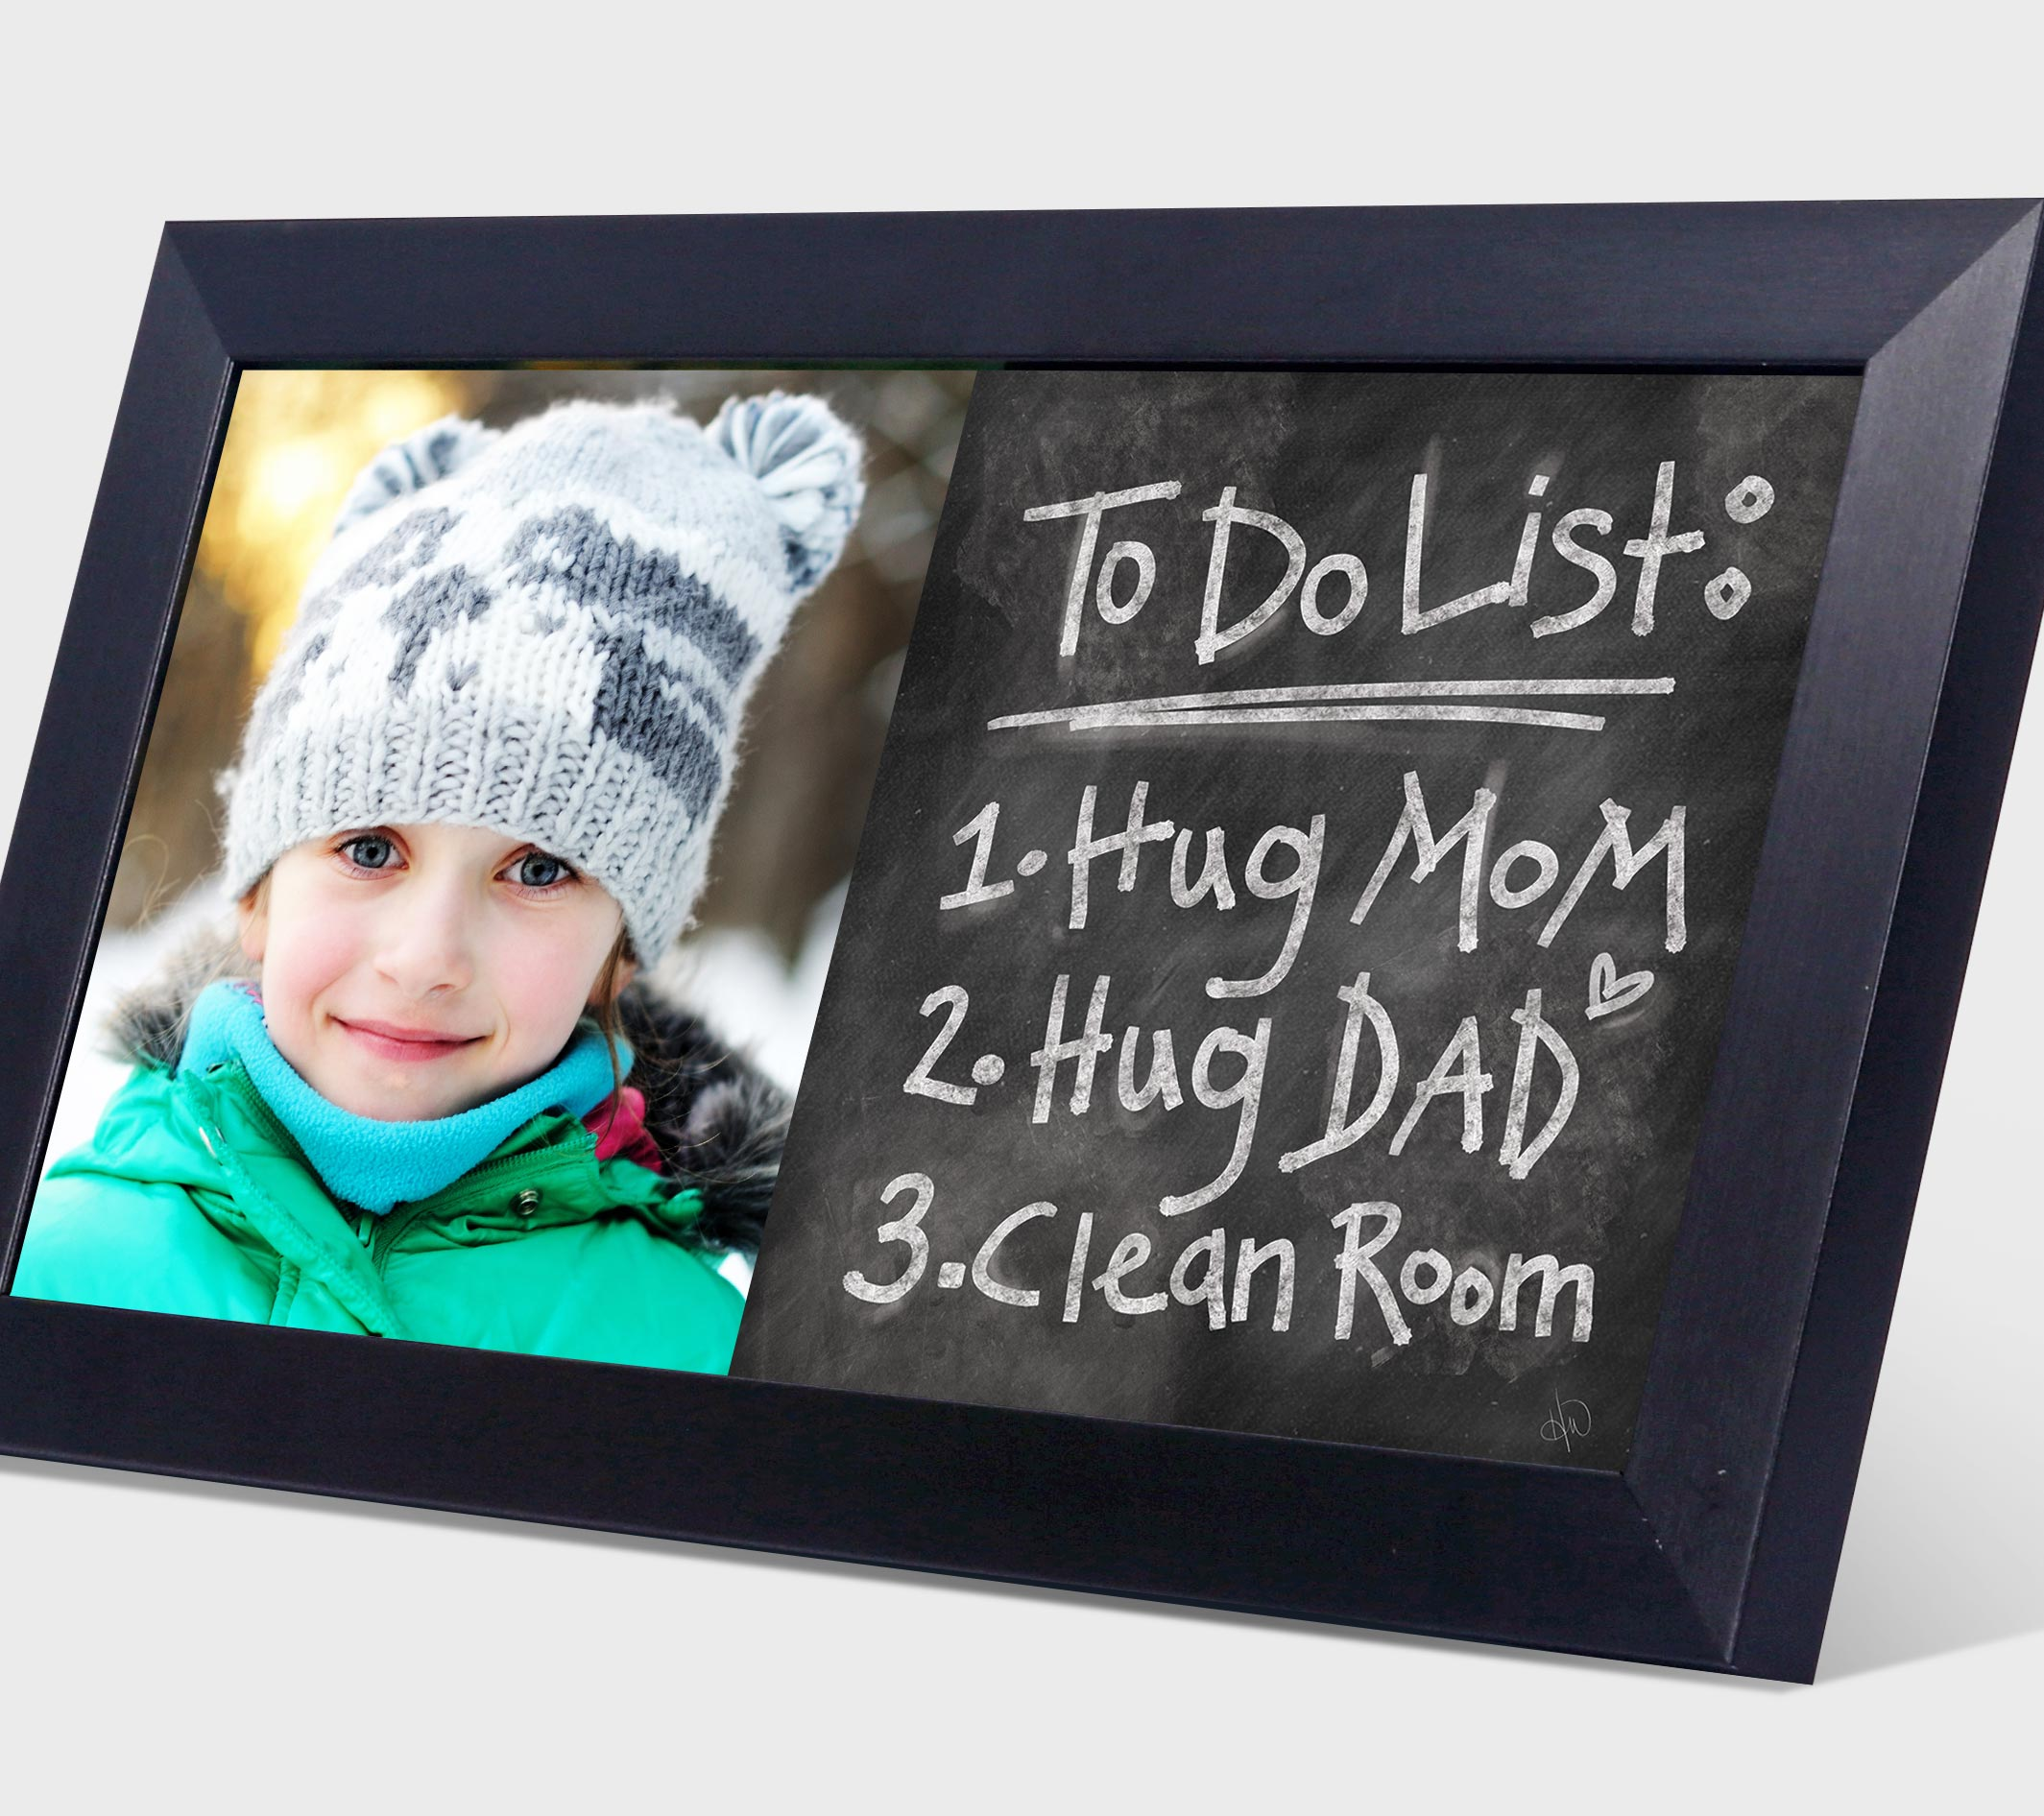 To do list posted on a chalk board print